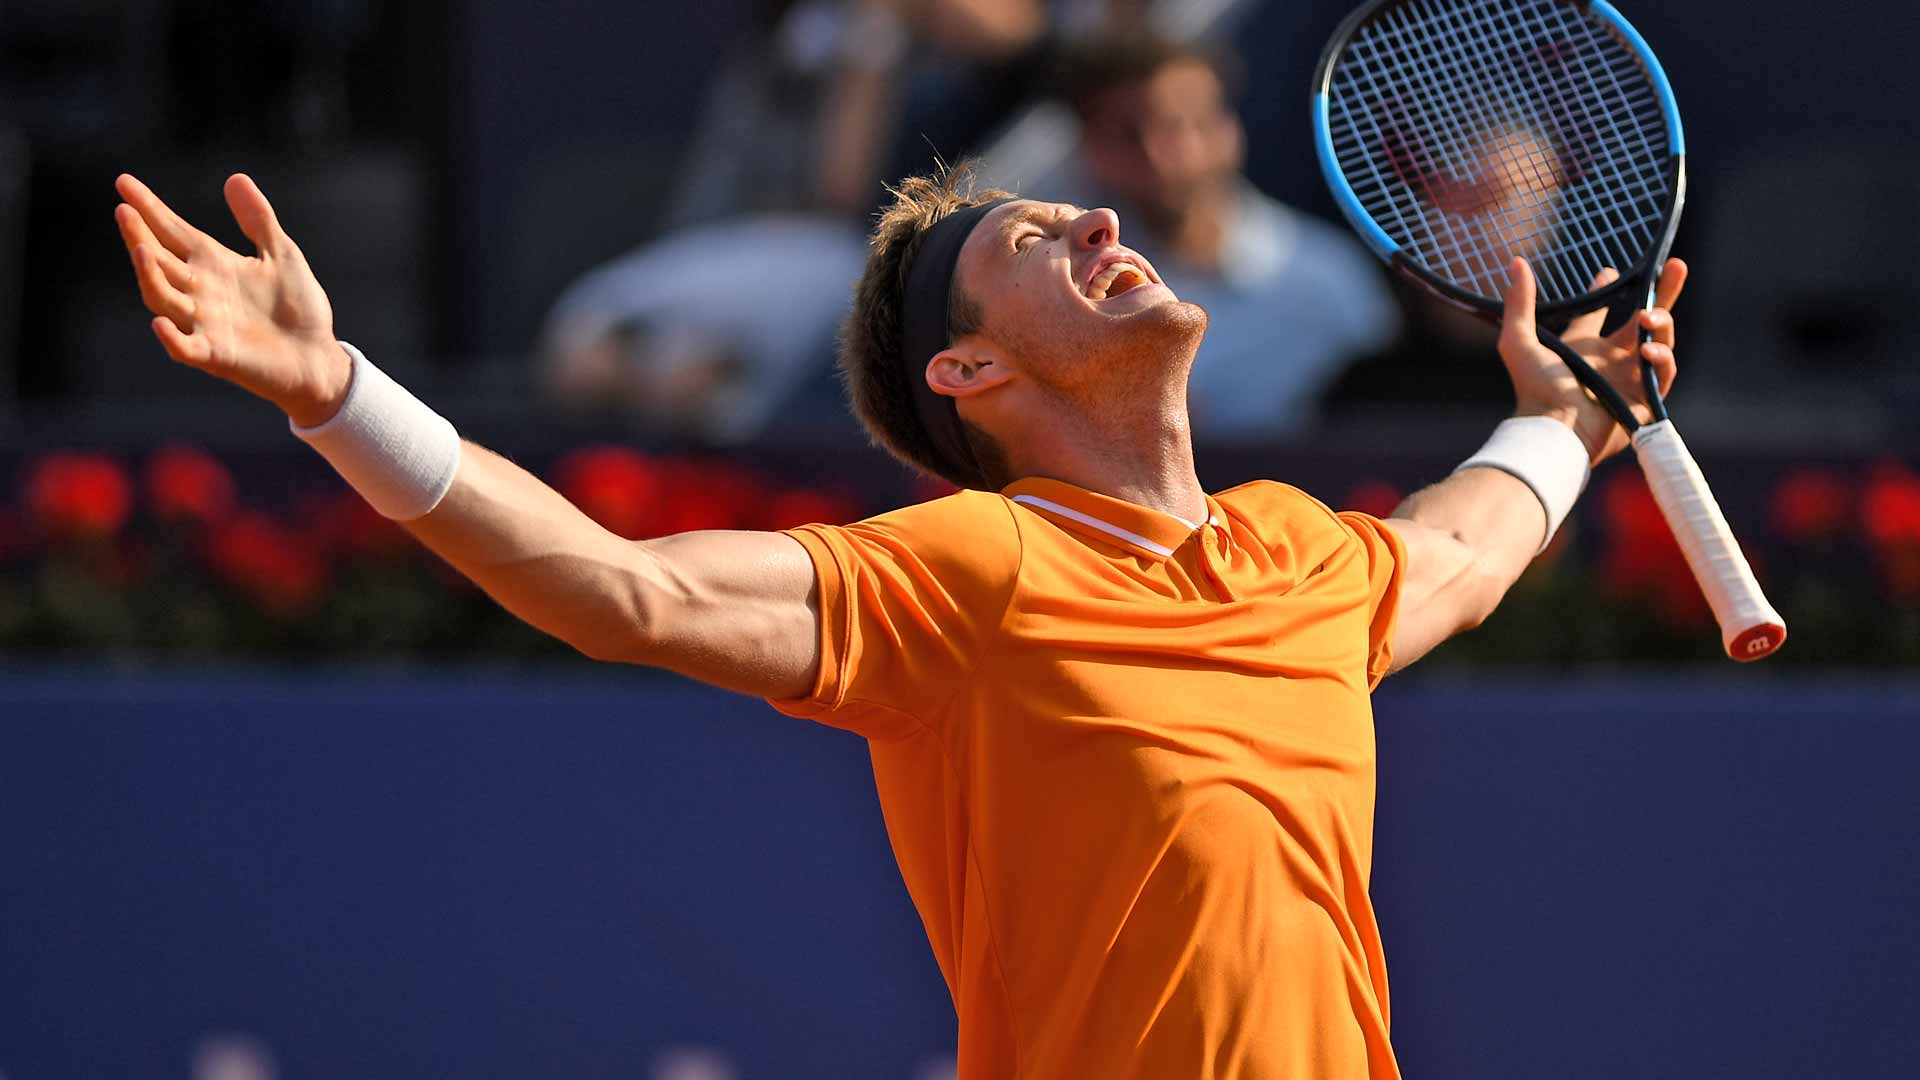 Nicolas Jarry celebrates his win against Alexander Zverev in Barcelona